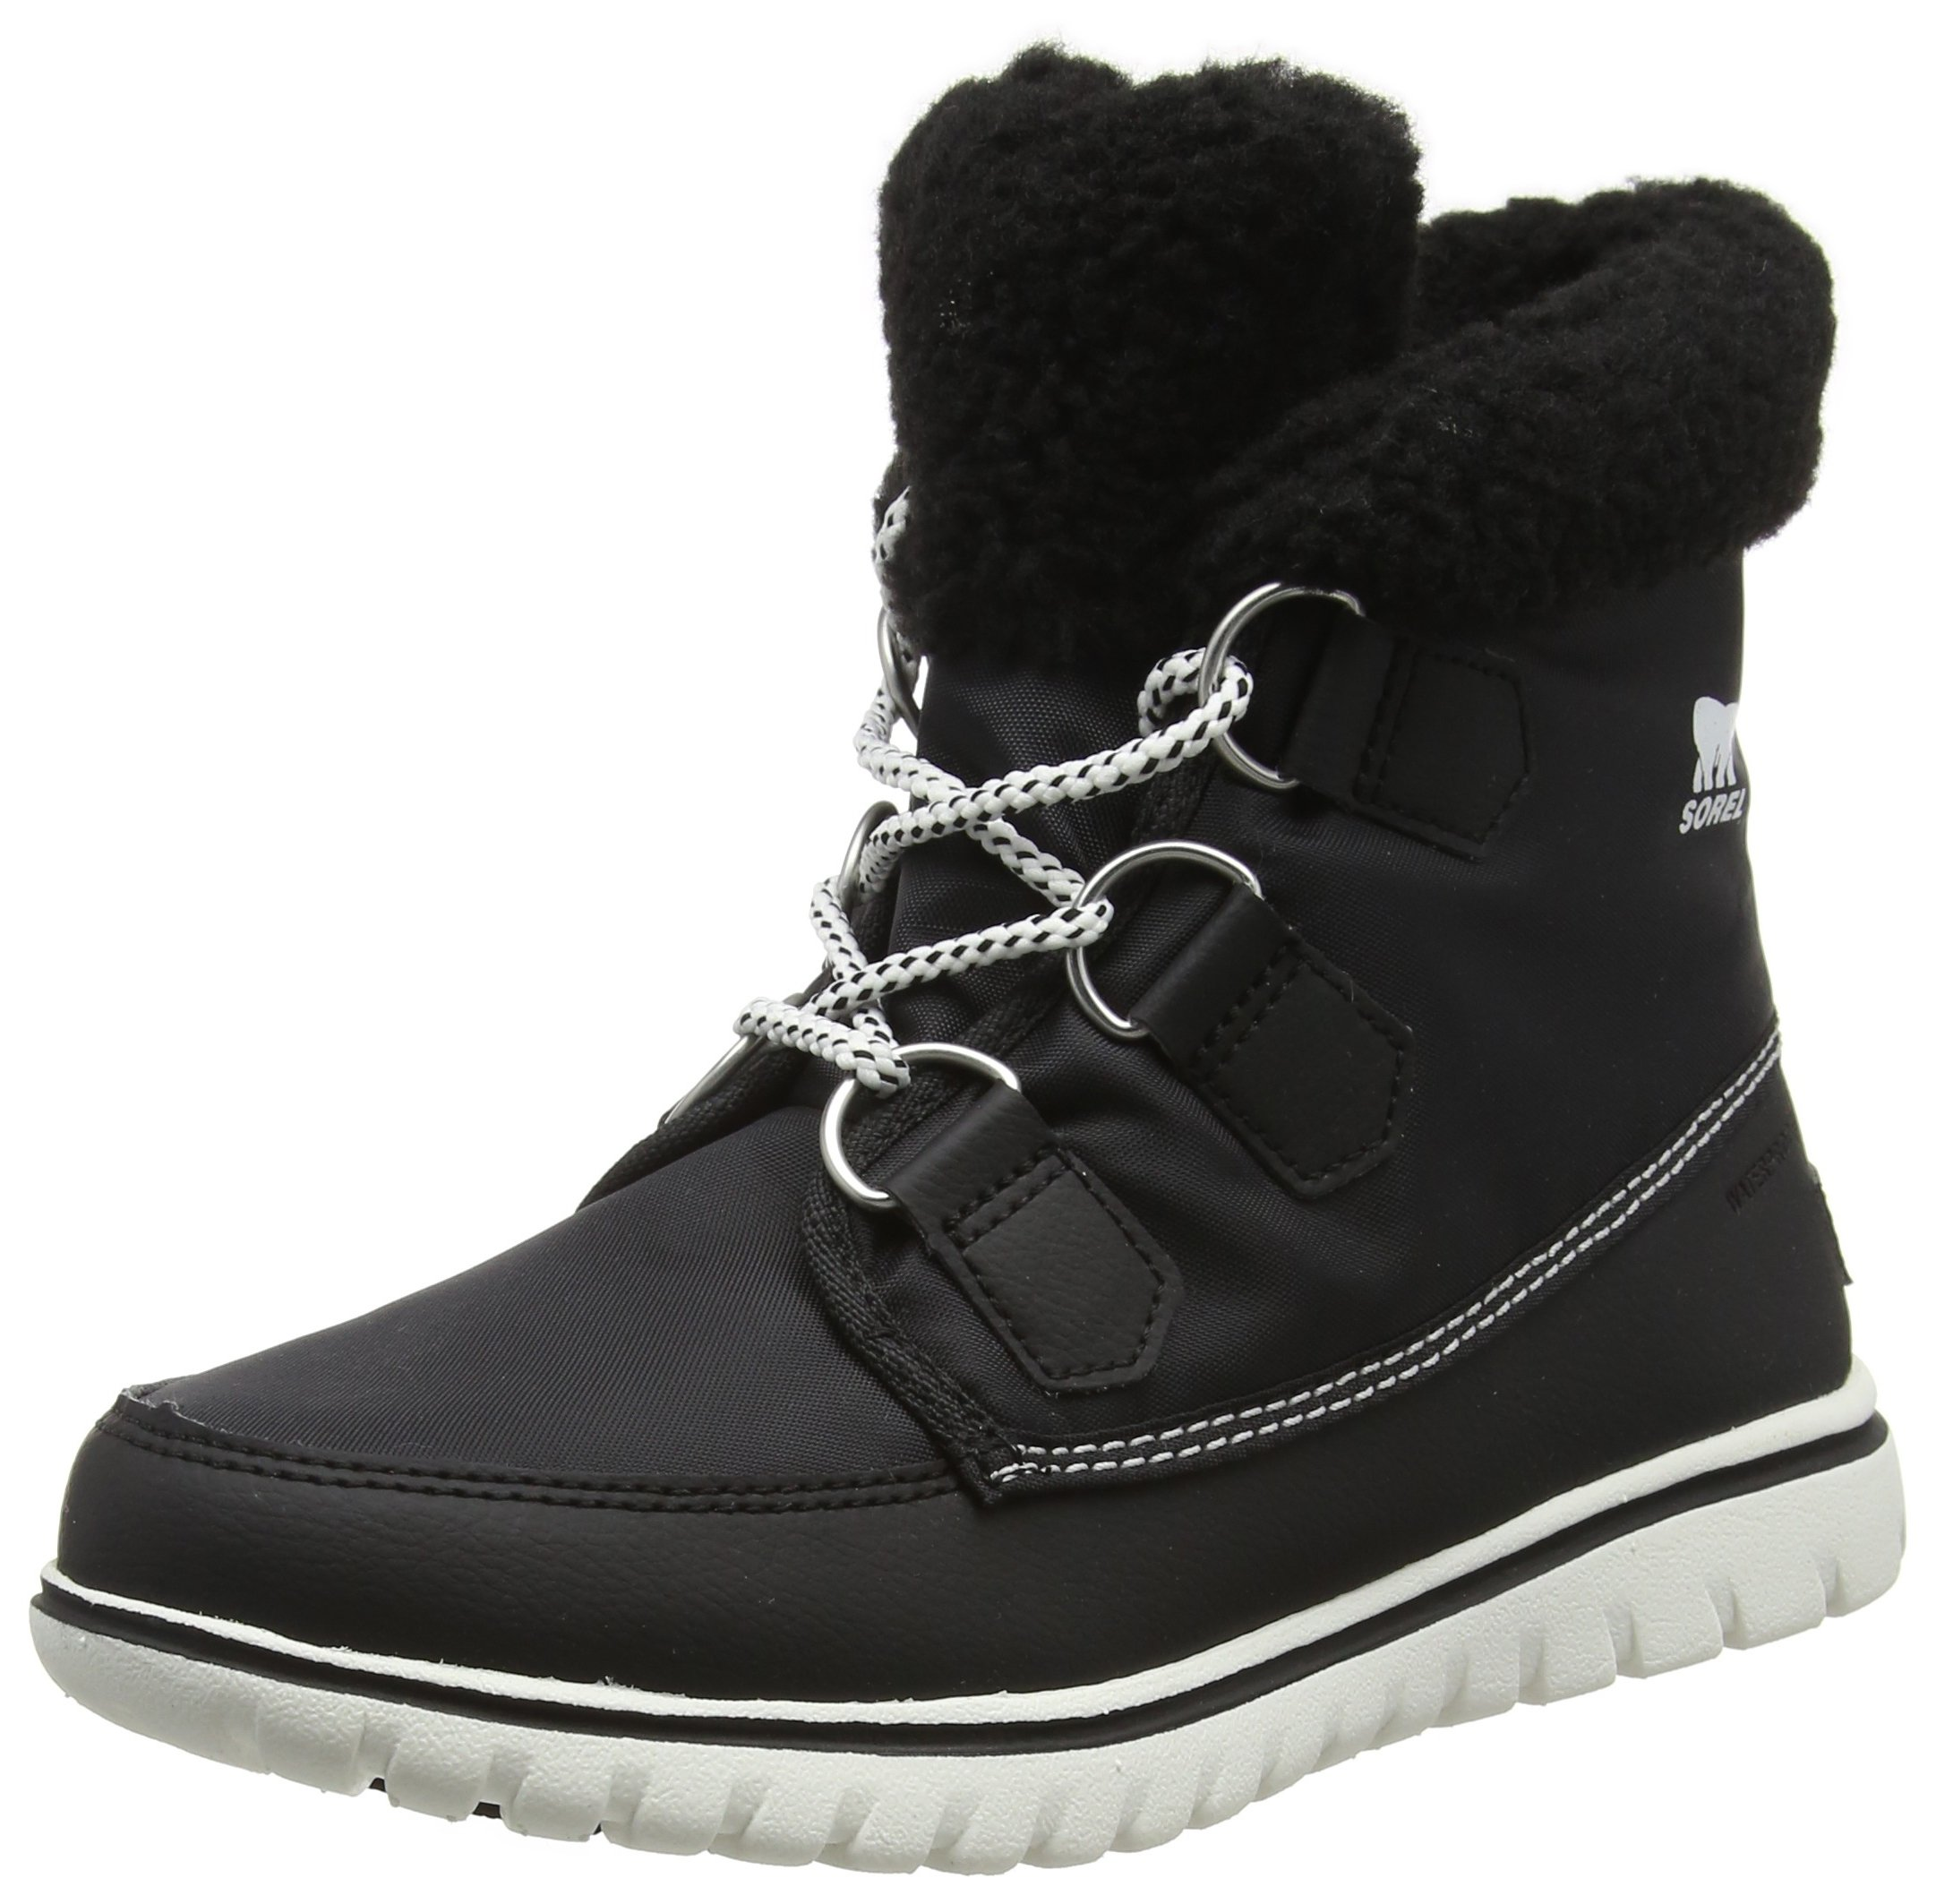 Sorel Women's Cozy Carnival Booties, Black, 8 B(M) US